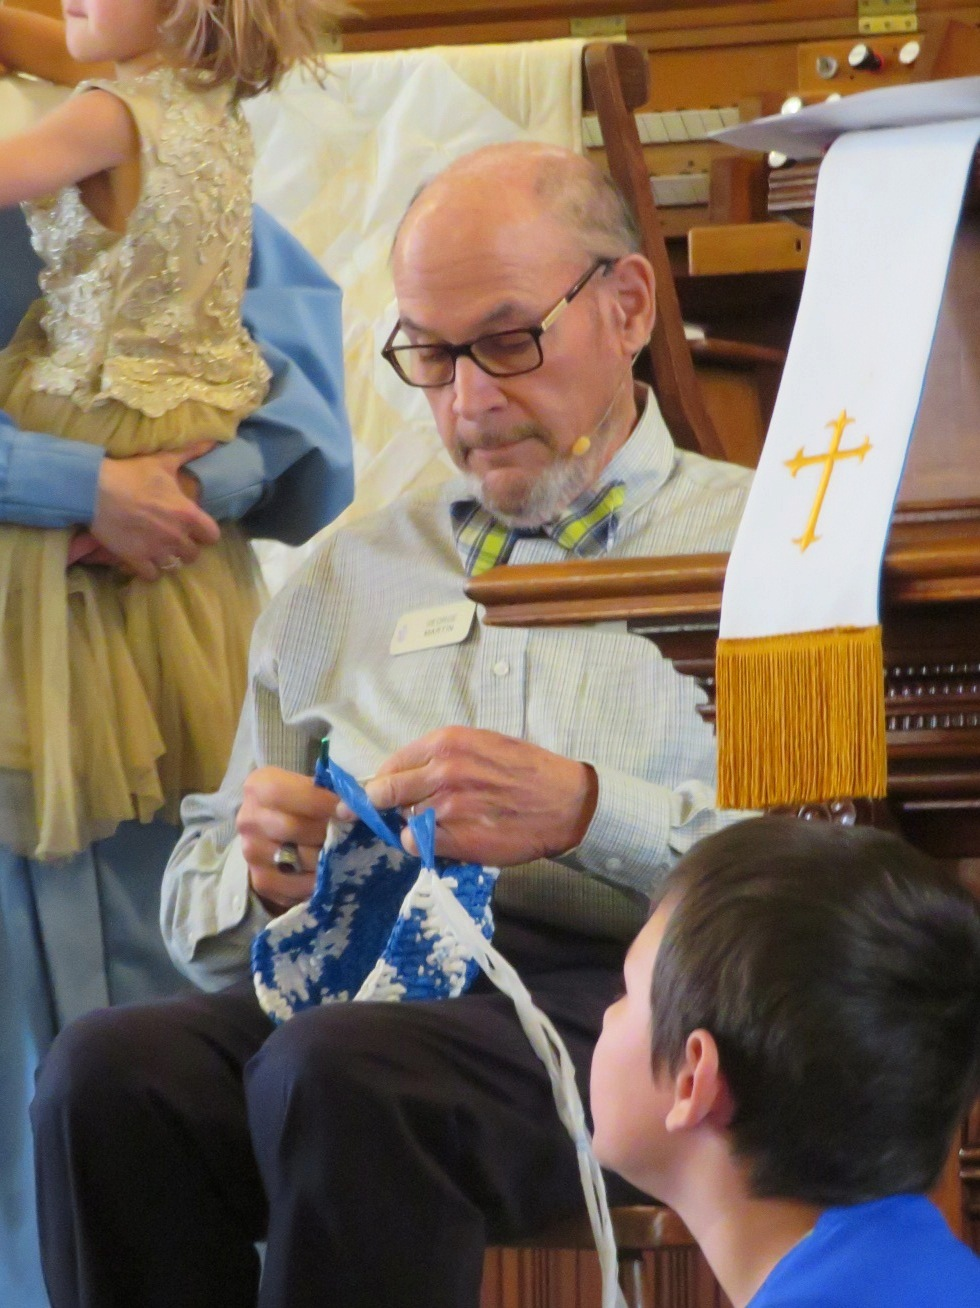 Single use becomes multi-use! - George Martin crochets strips of plastic he collects into bags that can be used again and again. Here he is in worship showing the kids his gifted fingers.